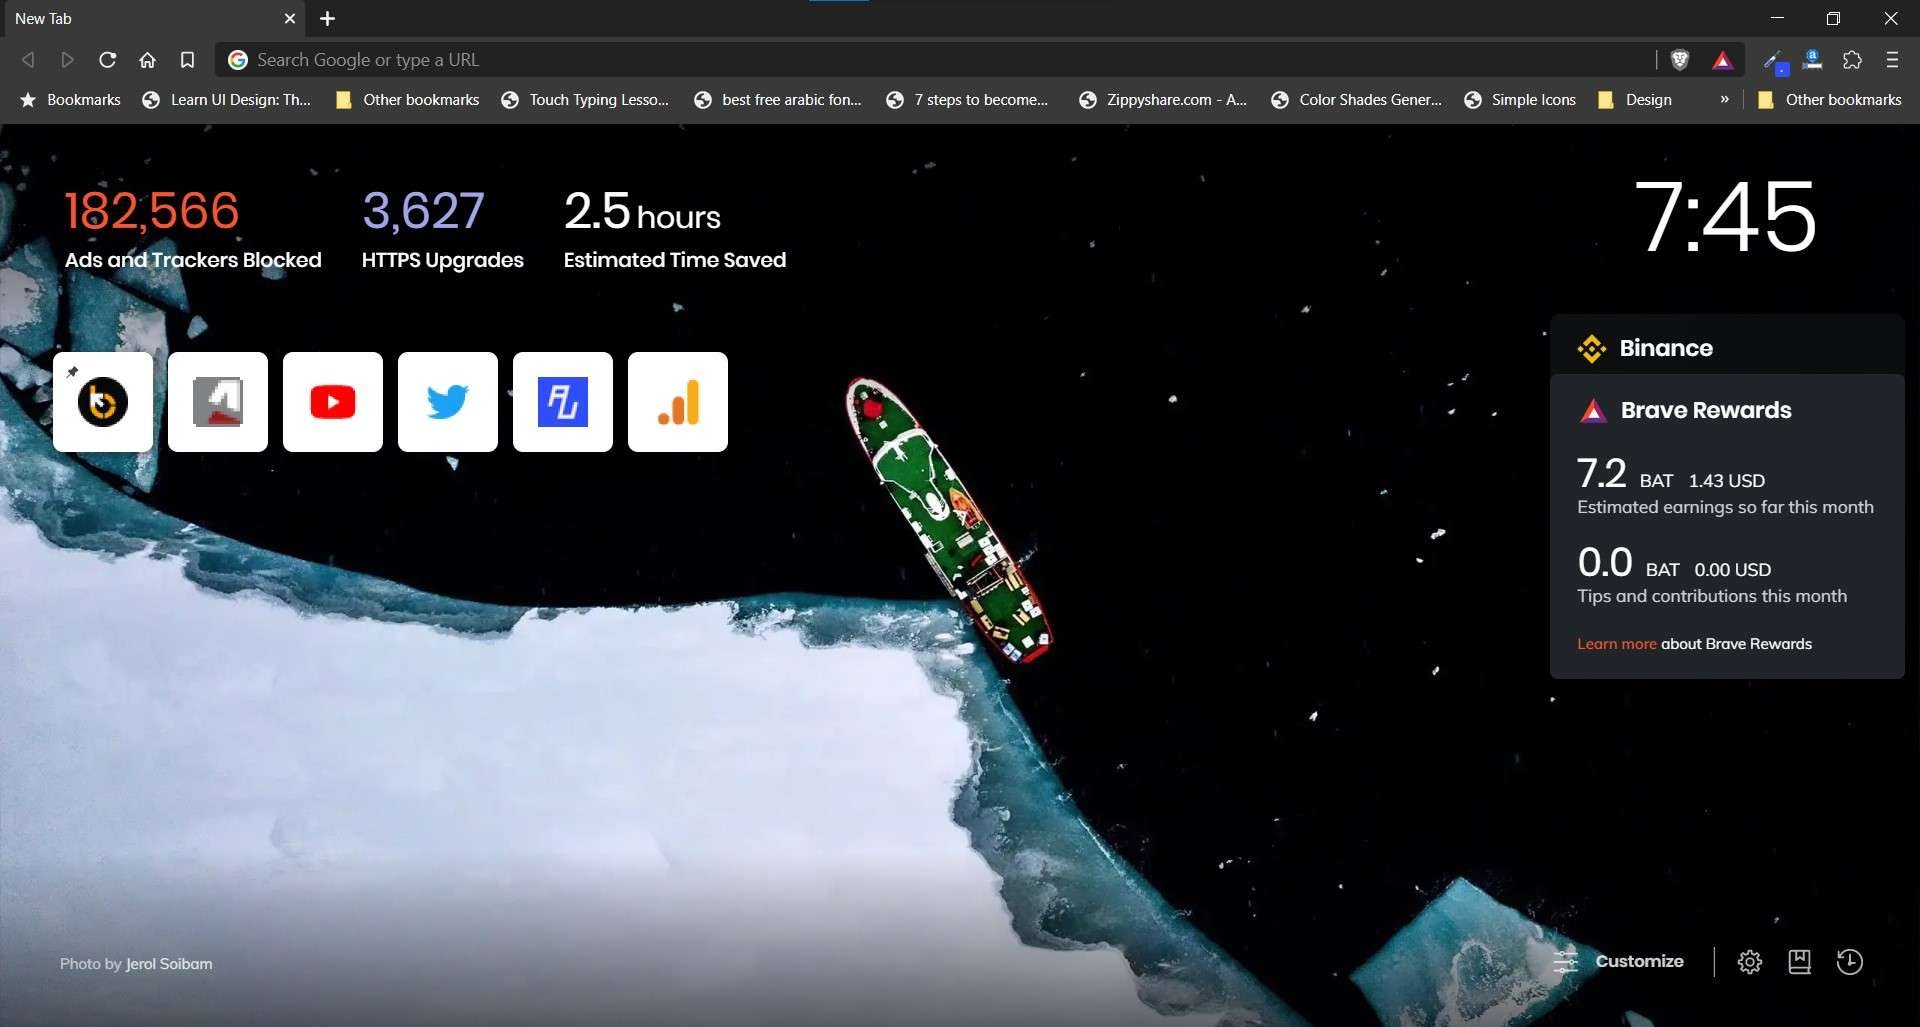 Brave Browser: UI on New Tab Page